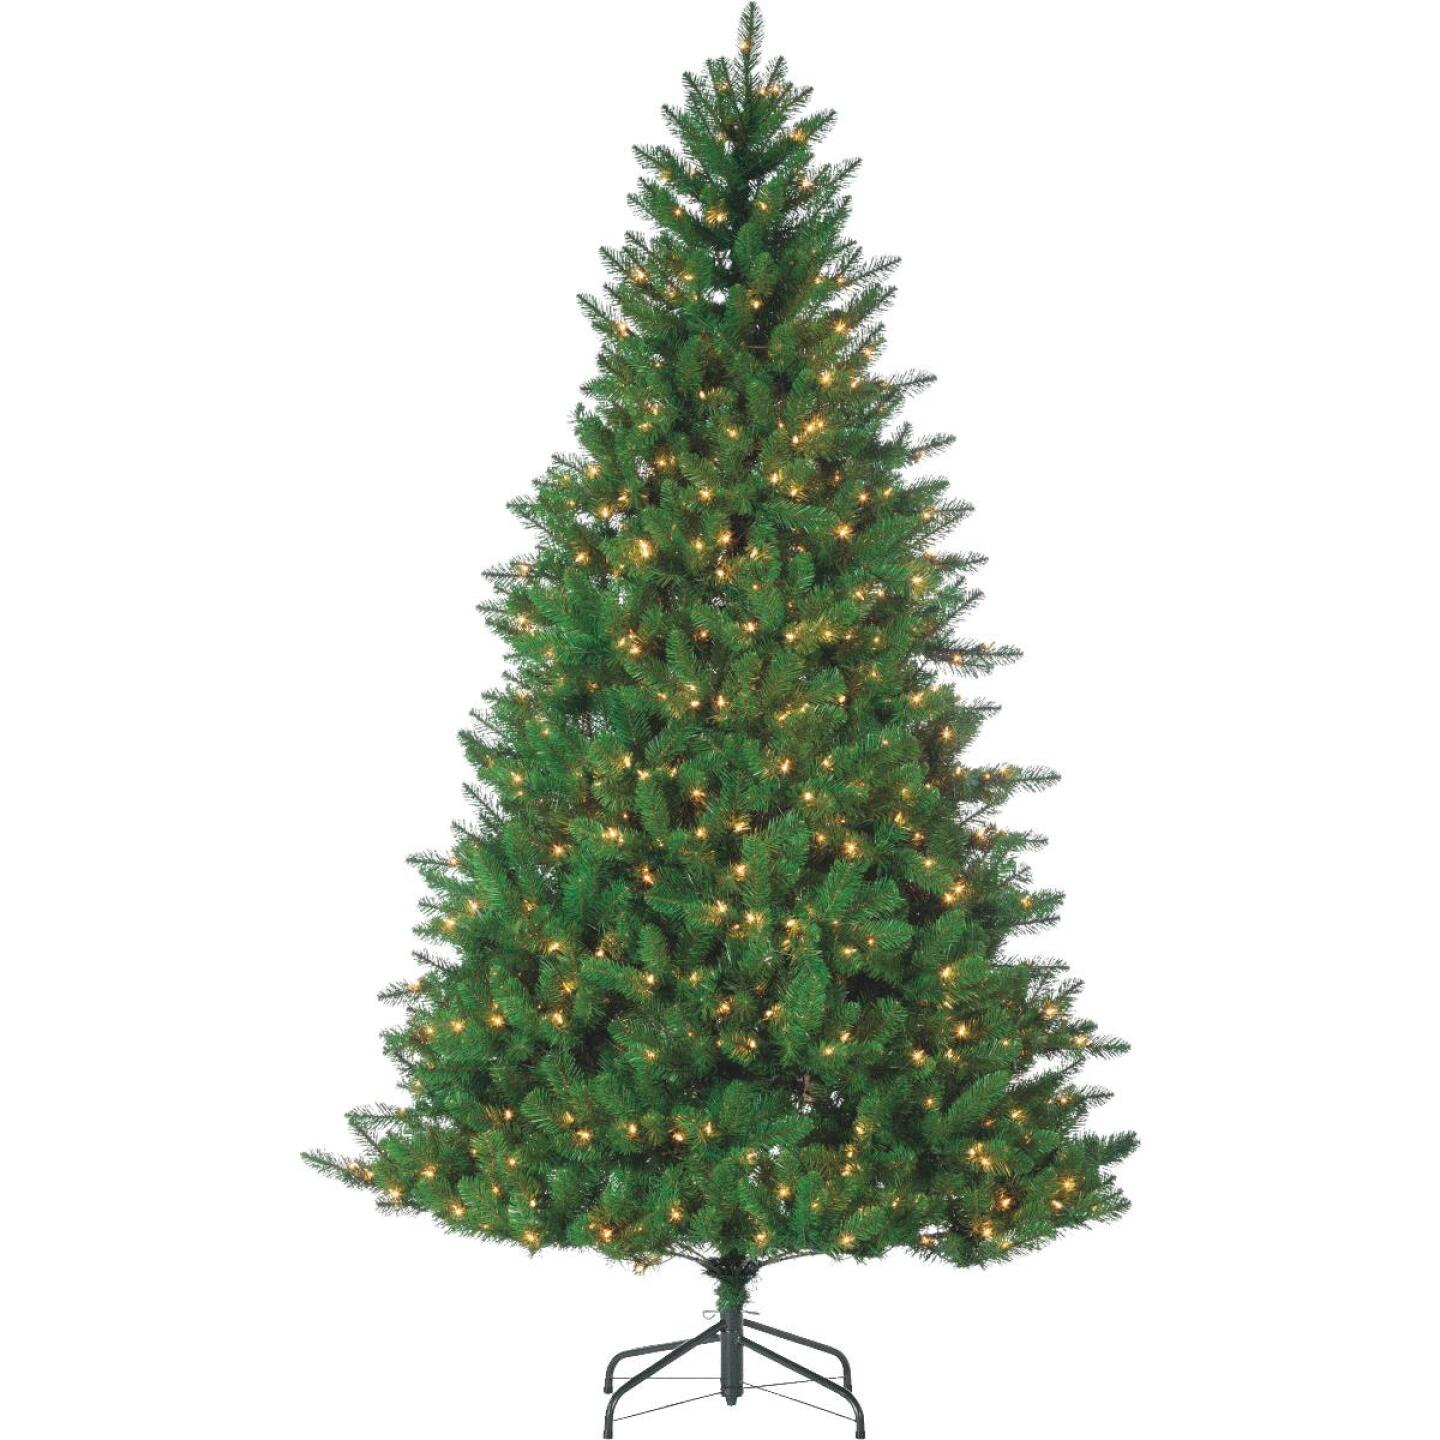 Gerson 7.5 Ft. Stone Pine 700-Bulb Clear LED Prelit Artificial Christmas Tree Image 1